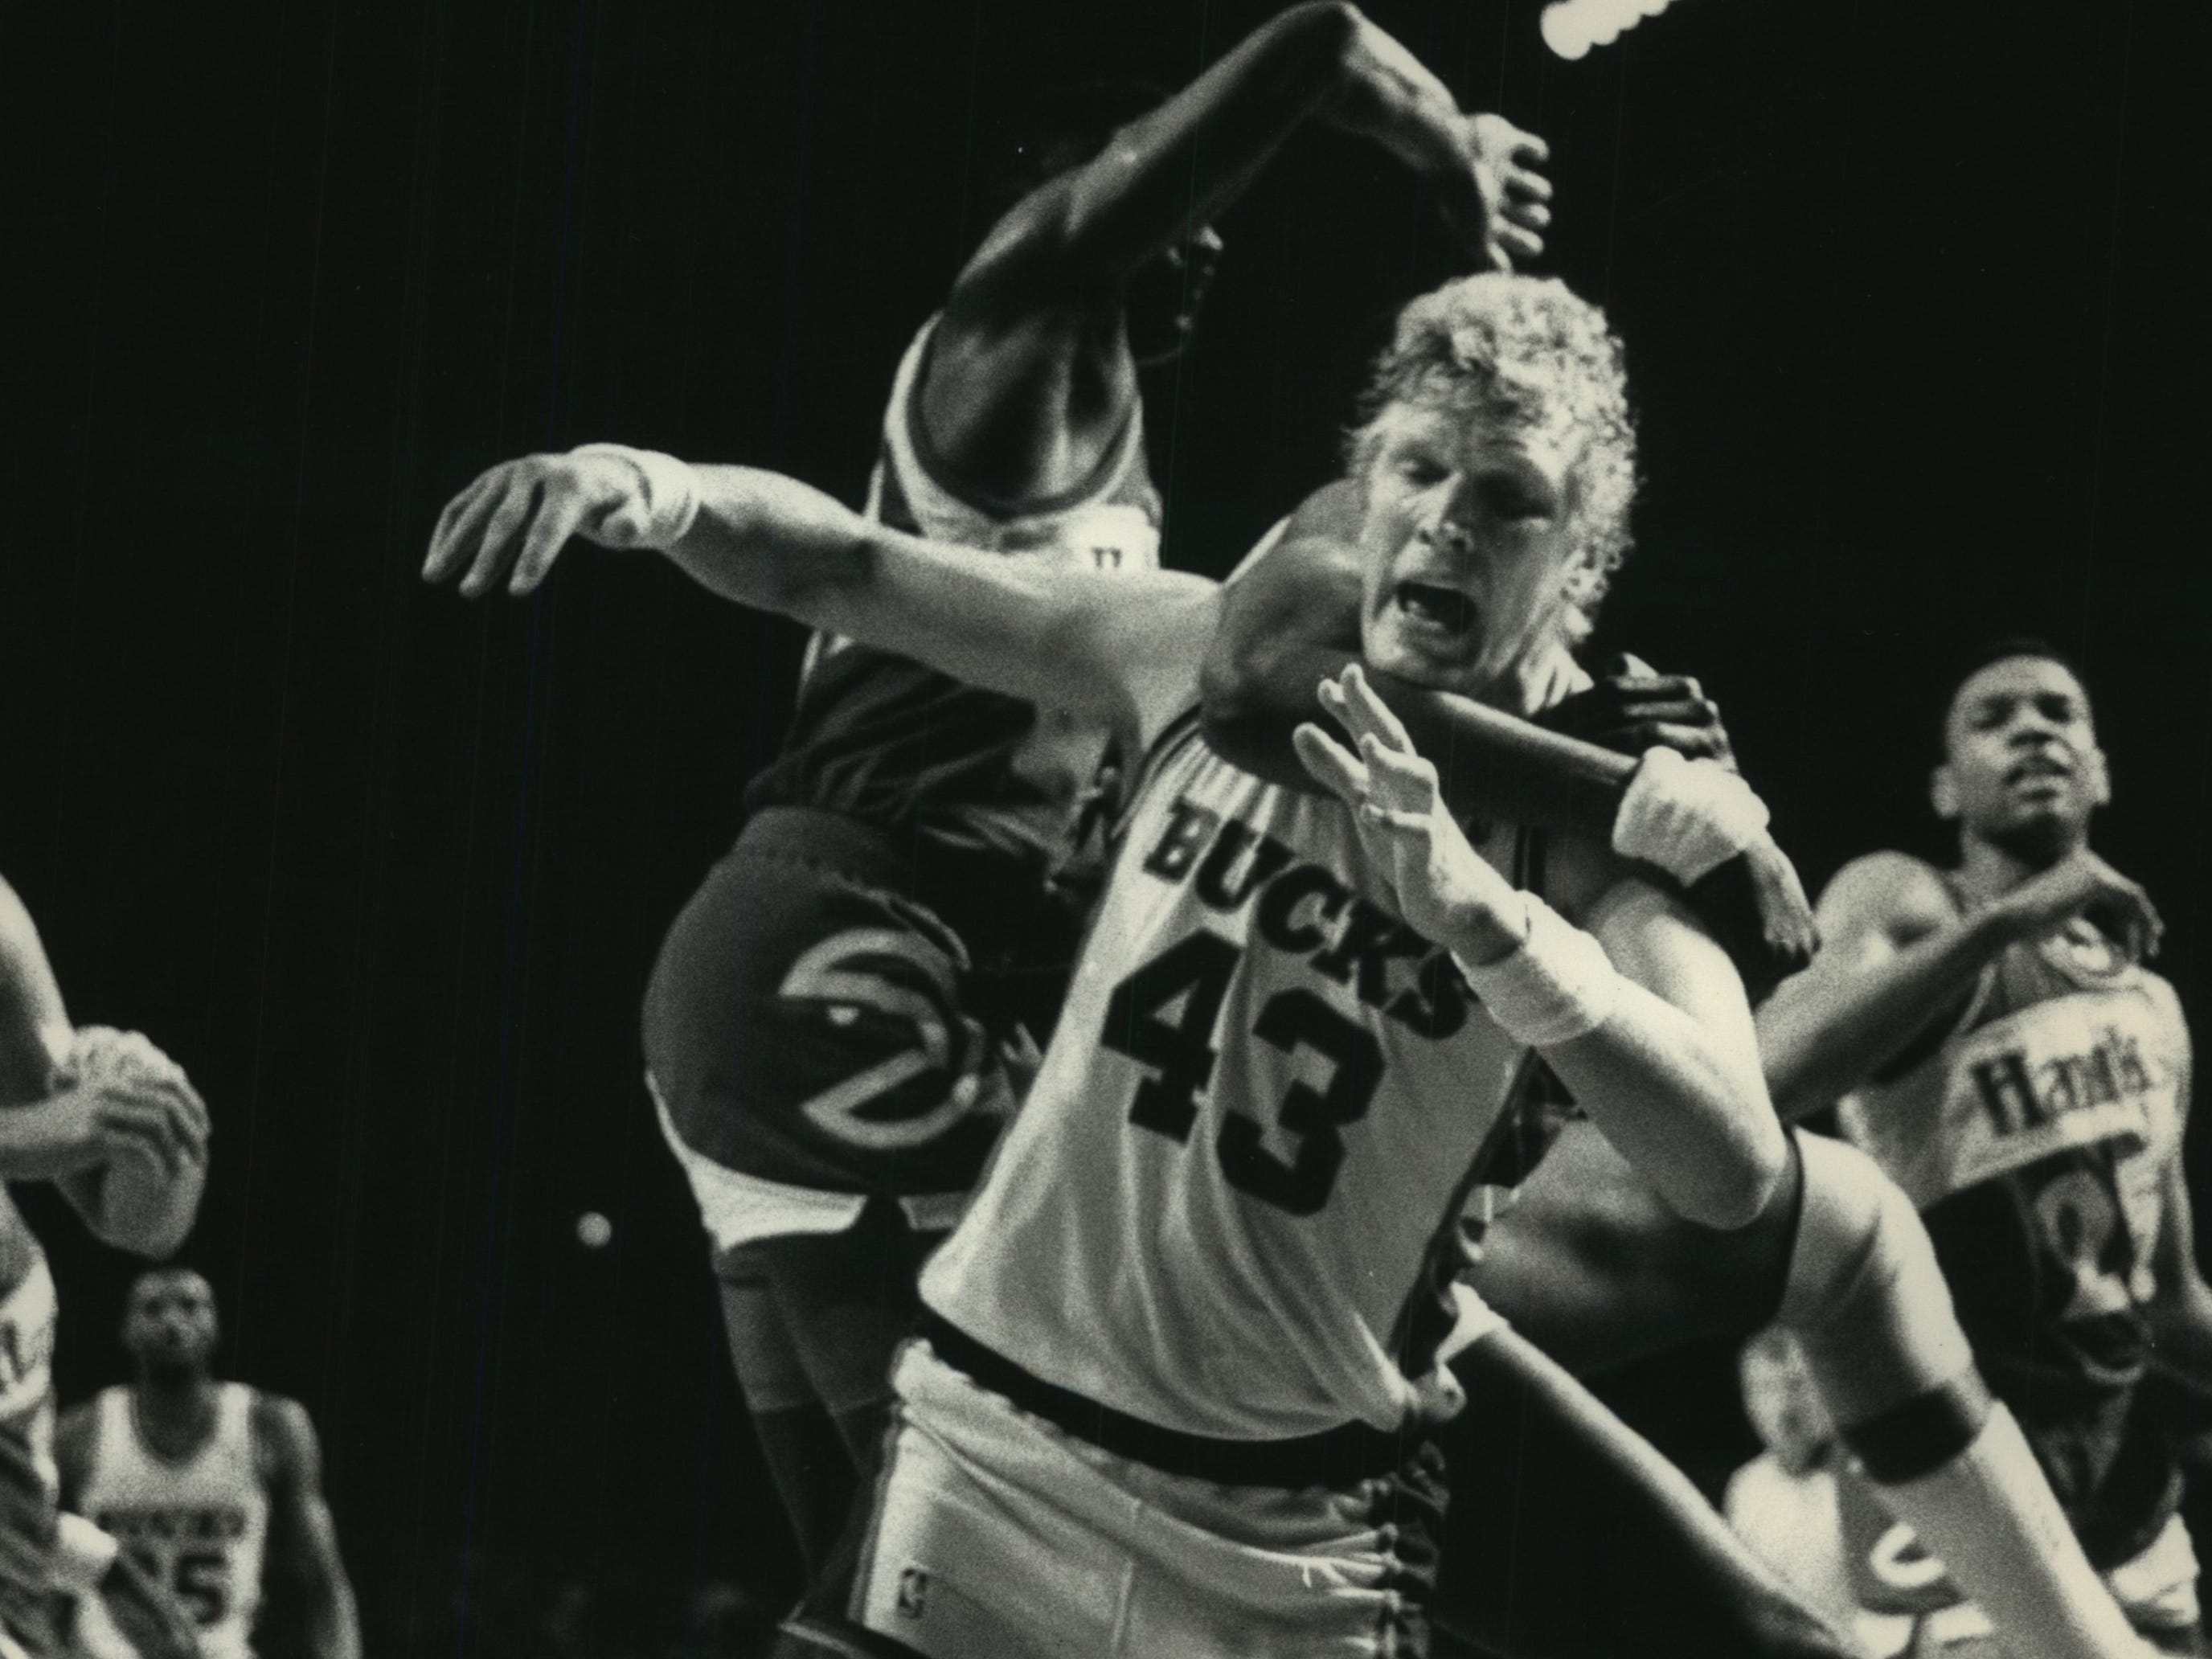 1988: Atlanta center Tree Rollins gets the Bucks' Jack Sikma in a headlock during Game 4 of the first round of the Eastern Conference playoffs on May 6, 1988, at the Milwaukee Arena. The Bucks beat the Hawks, 105-99, but lost the five-game series. This photo was published in the May 7, 1988, Milwaukee Journal.